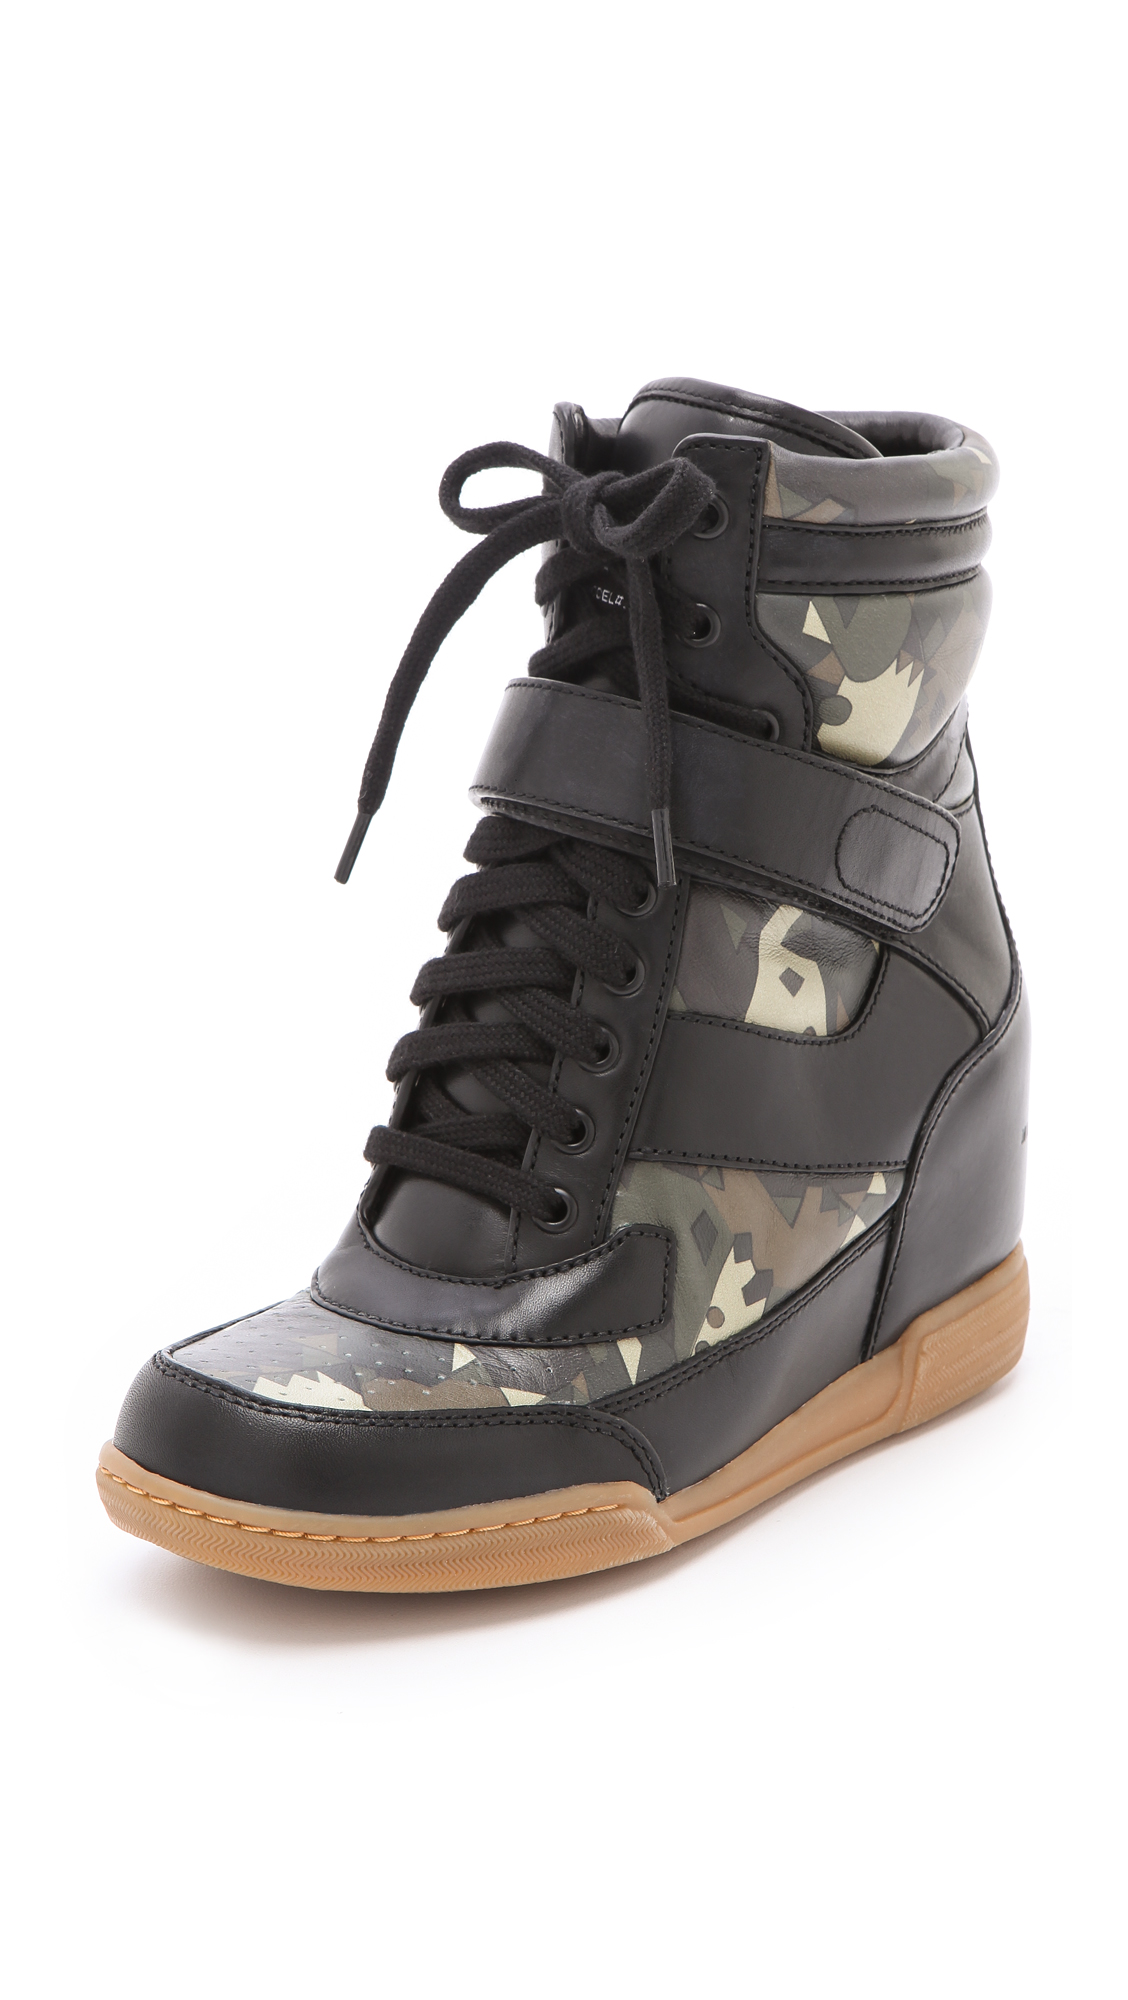 d8aa27f406b9 Gallery. Previously sold at  Shopbop · Women s Wedge Sneakers Women s Camo  ...